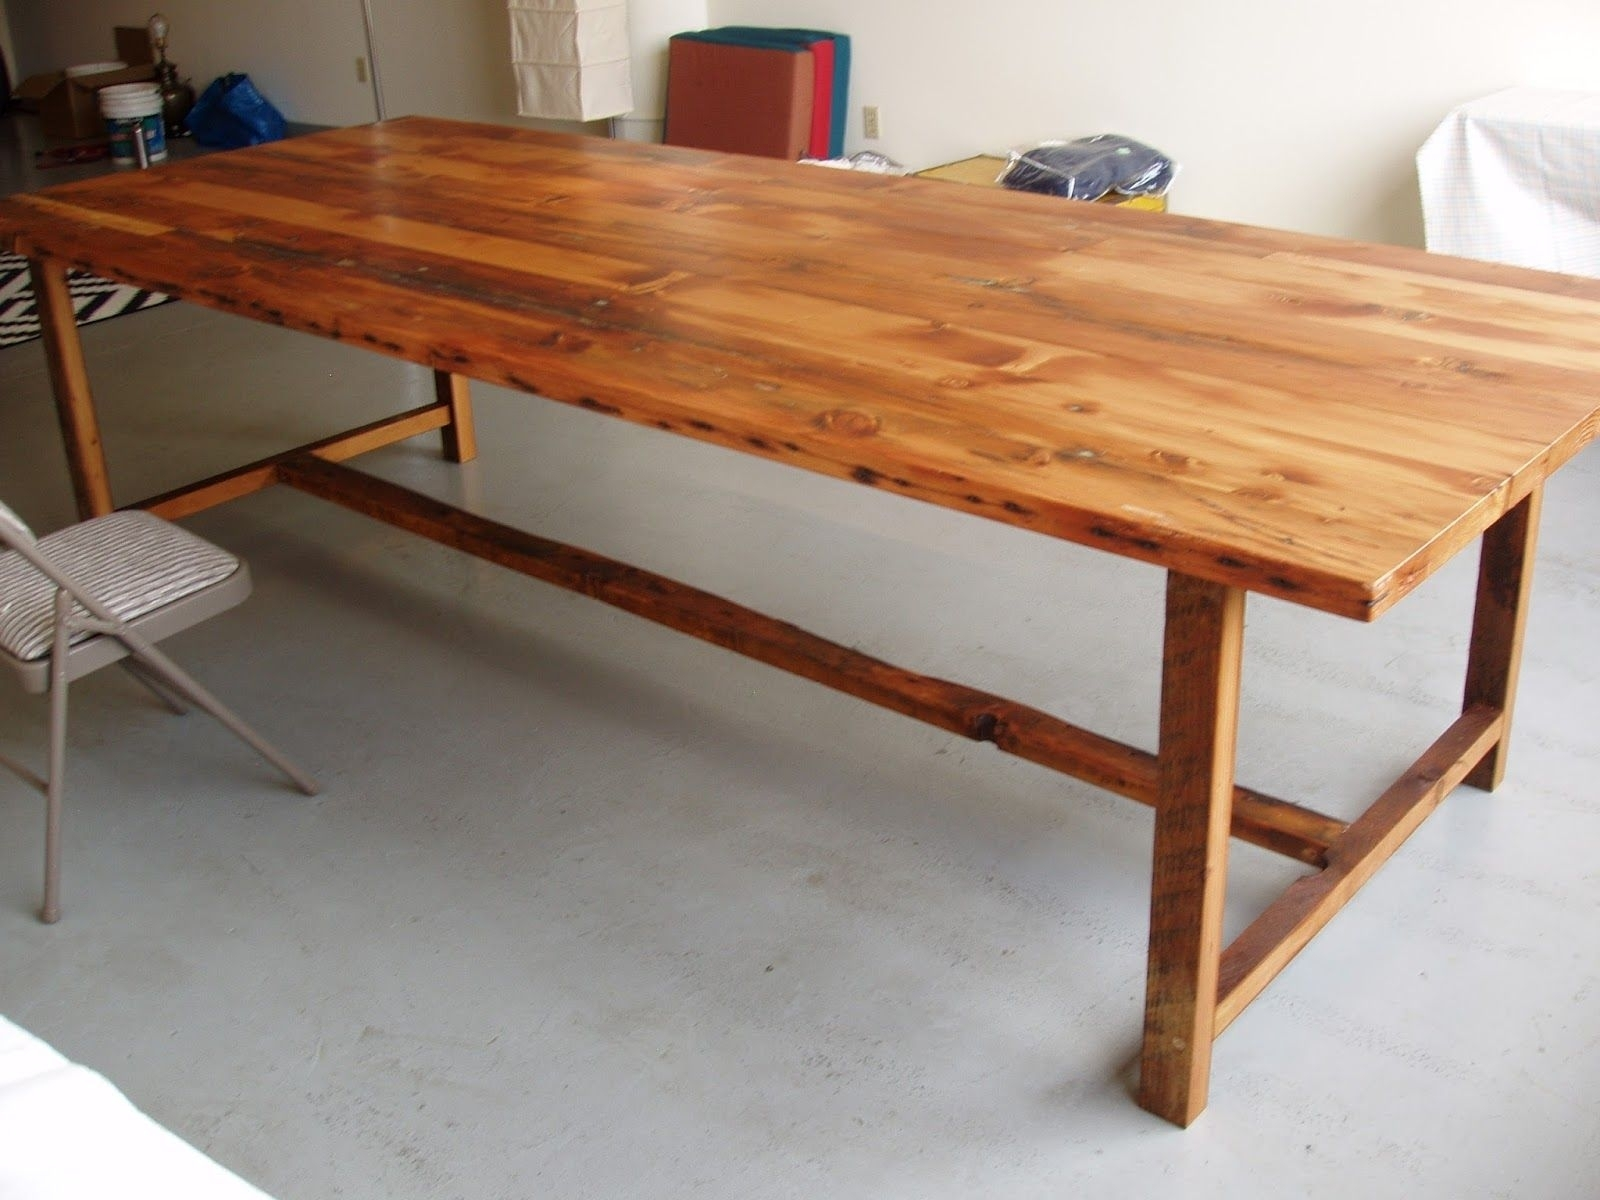 10 Foot Long48 Inch Wide Wood Dining Table | Custom Wood Throughout Most Recently Released Combs 48 Inch Extension Dining Tables (Image 1 of 20)